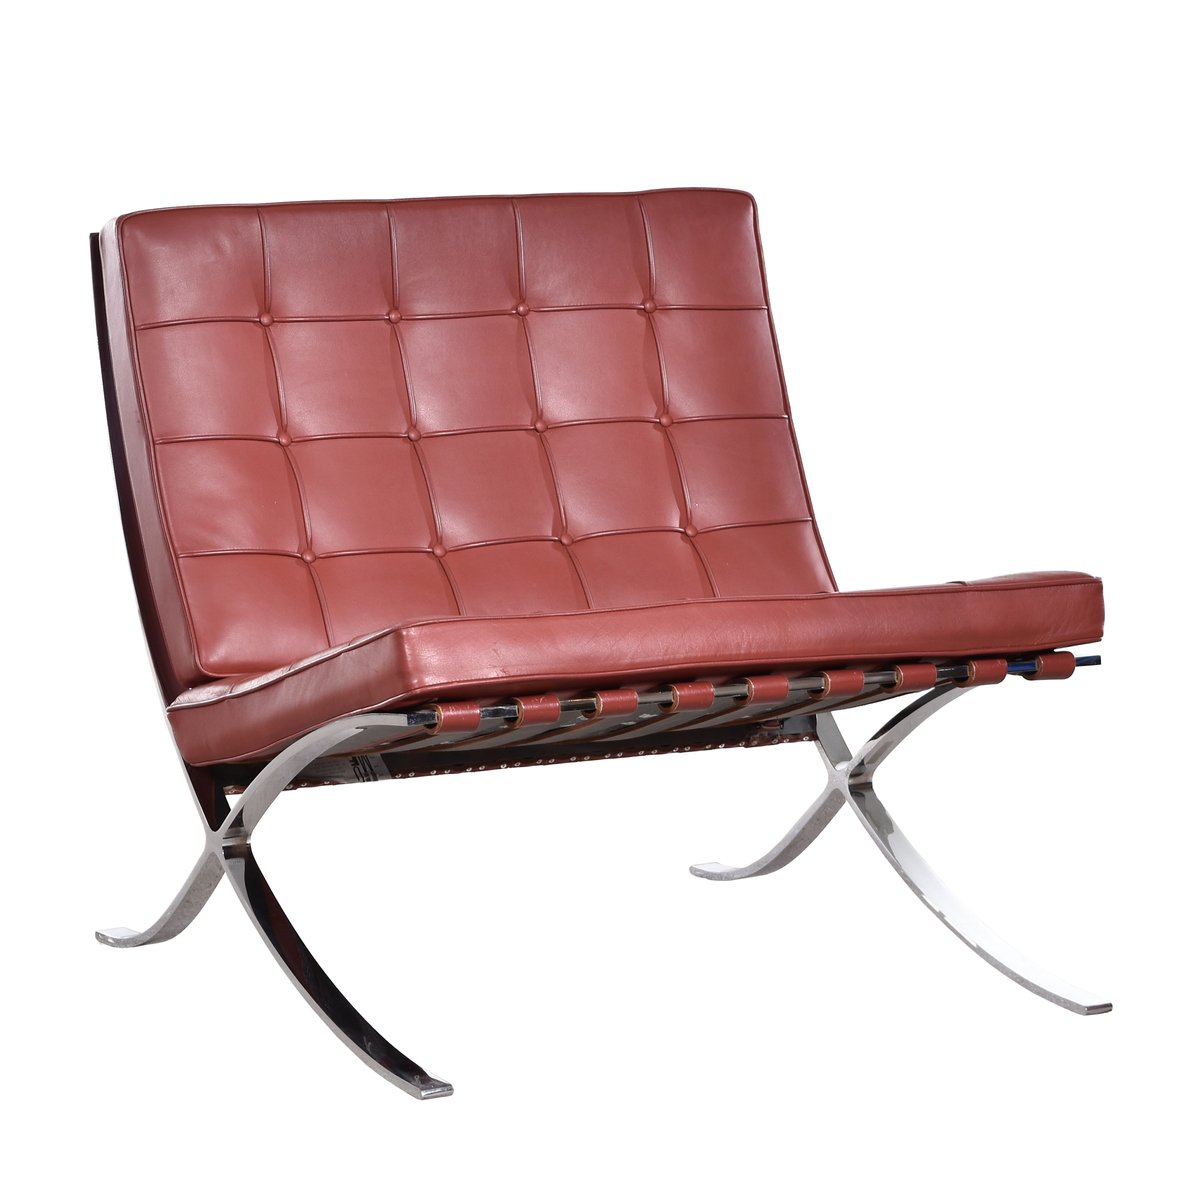 mies van der rohe barcelona chair stylex office chairs by ludwig for knoll